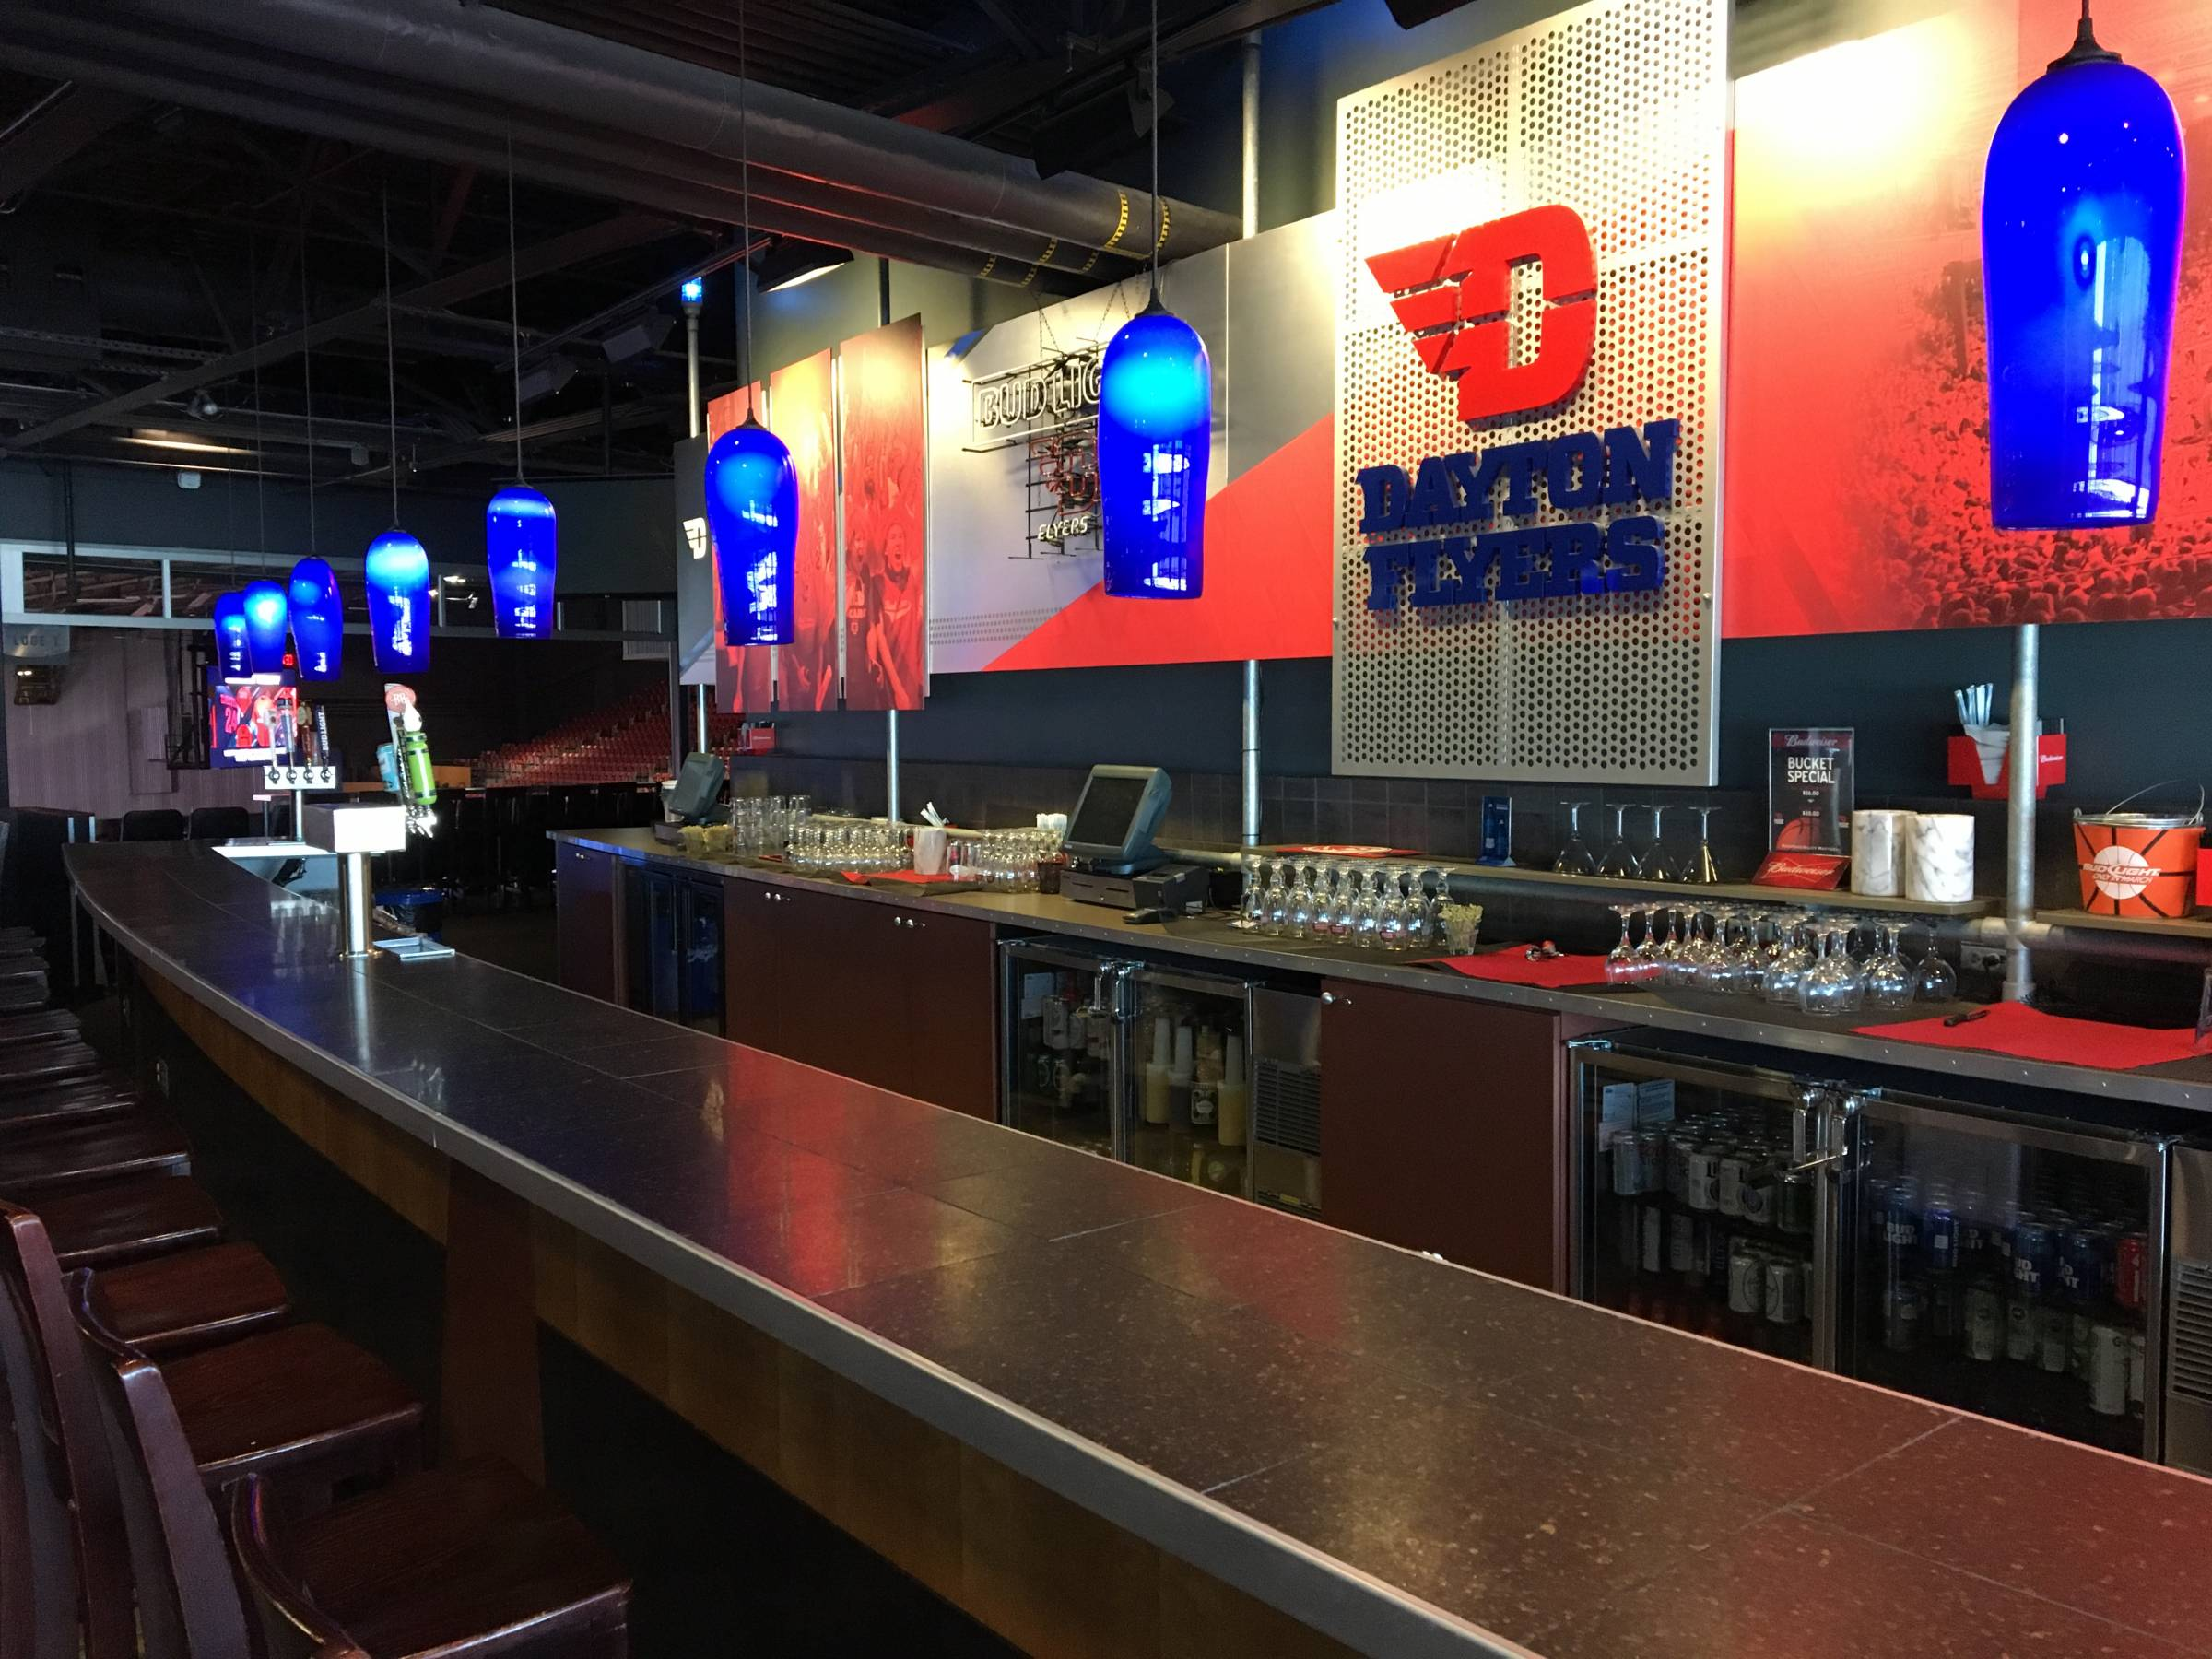 Flight Deck Bar at UD Arena